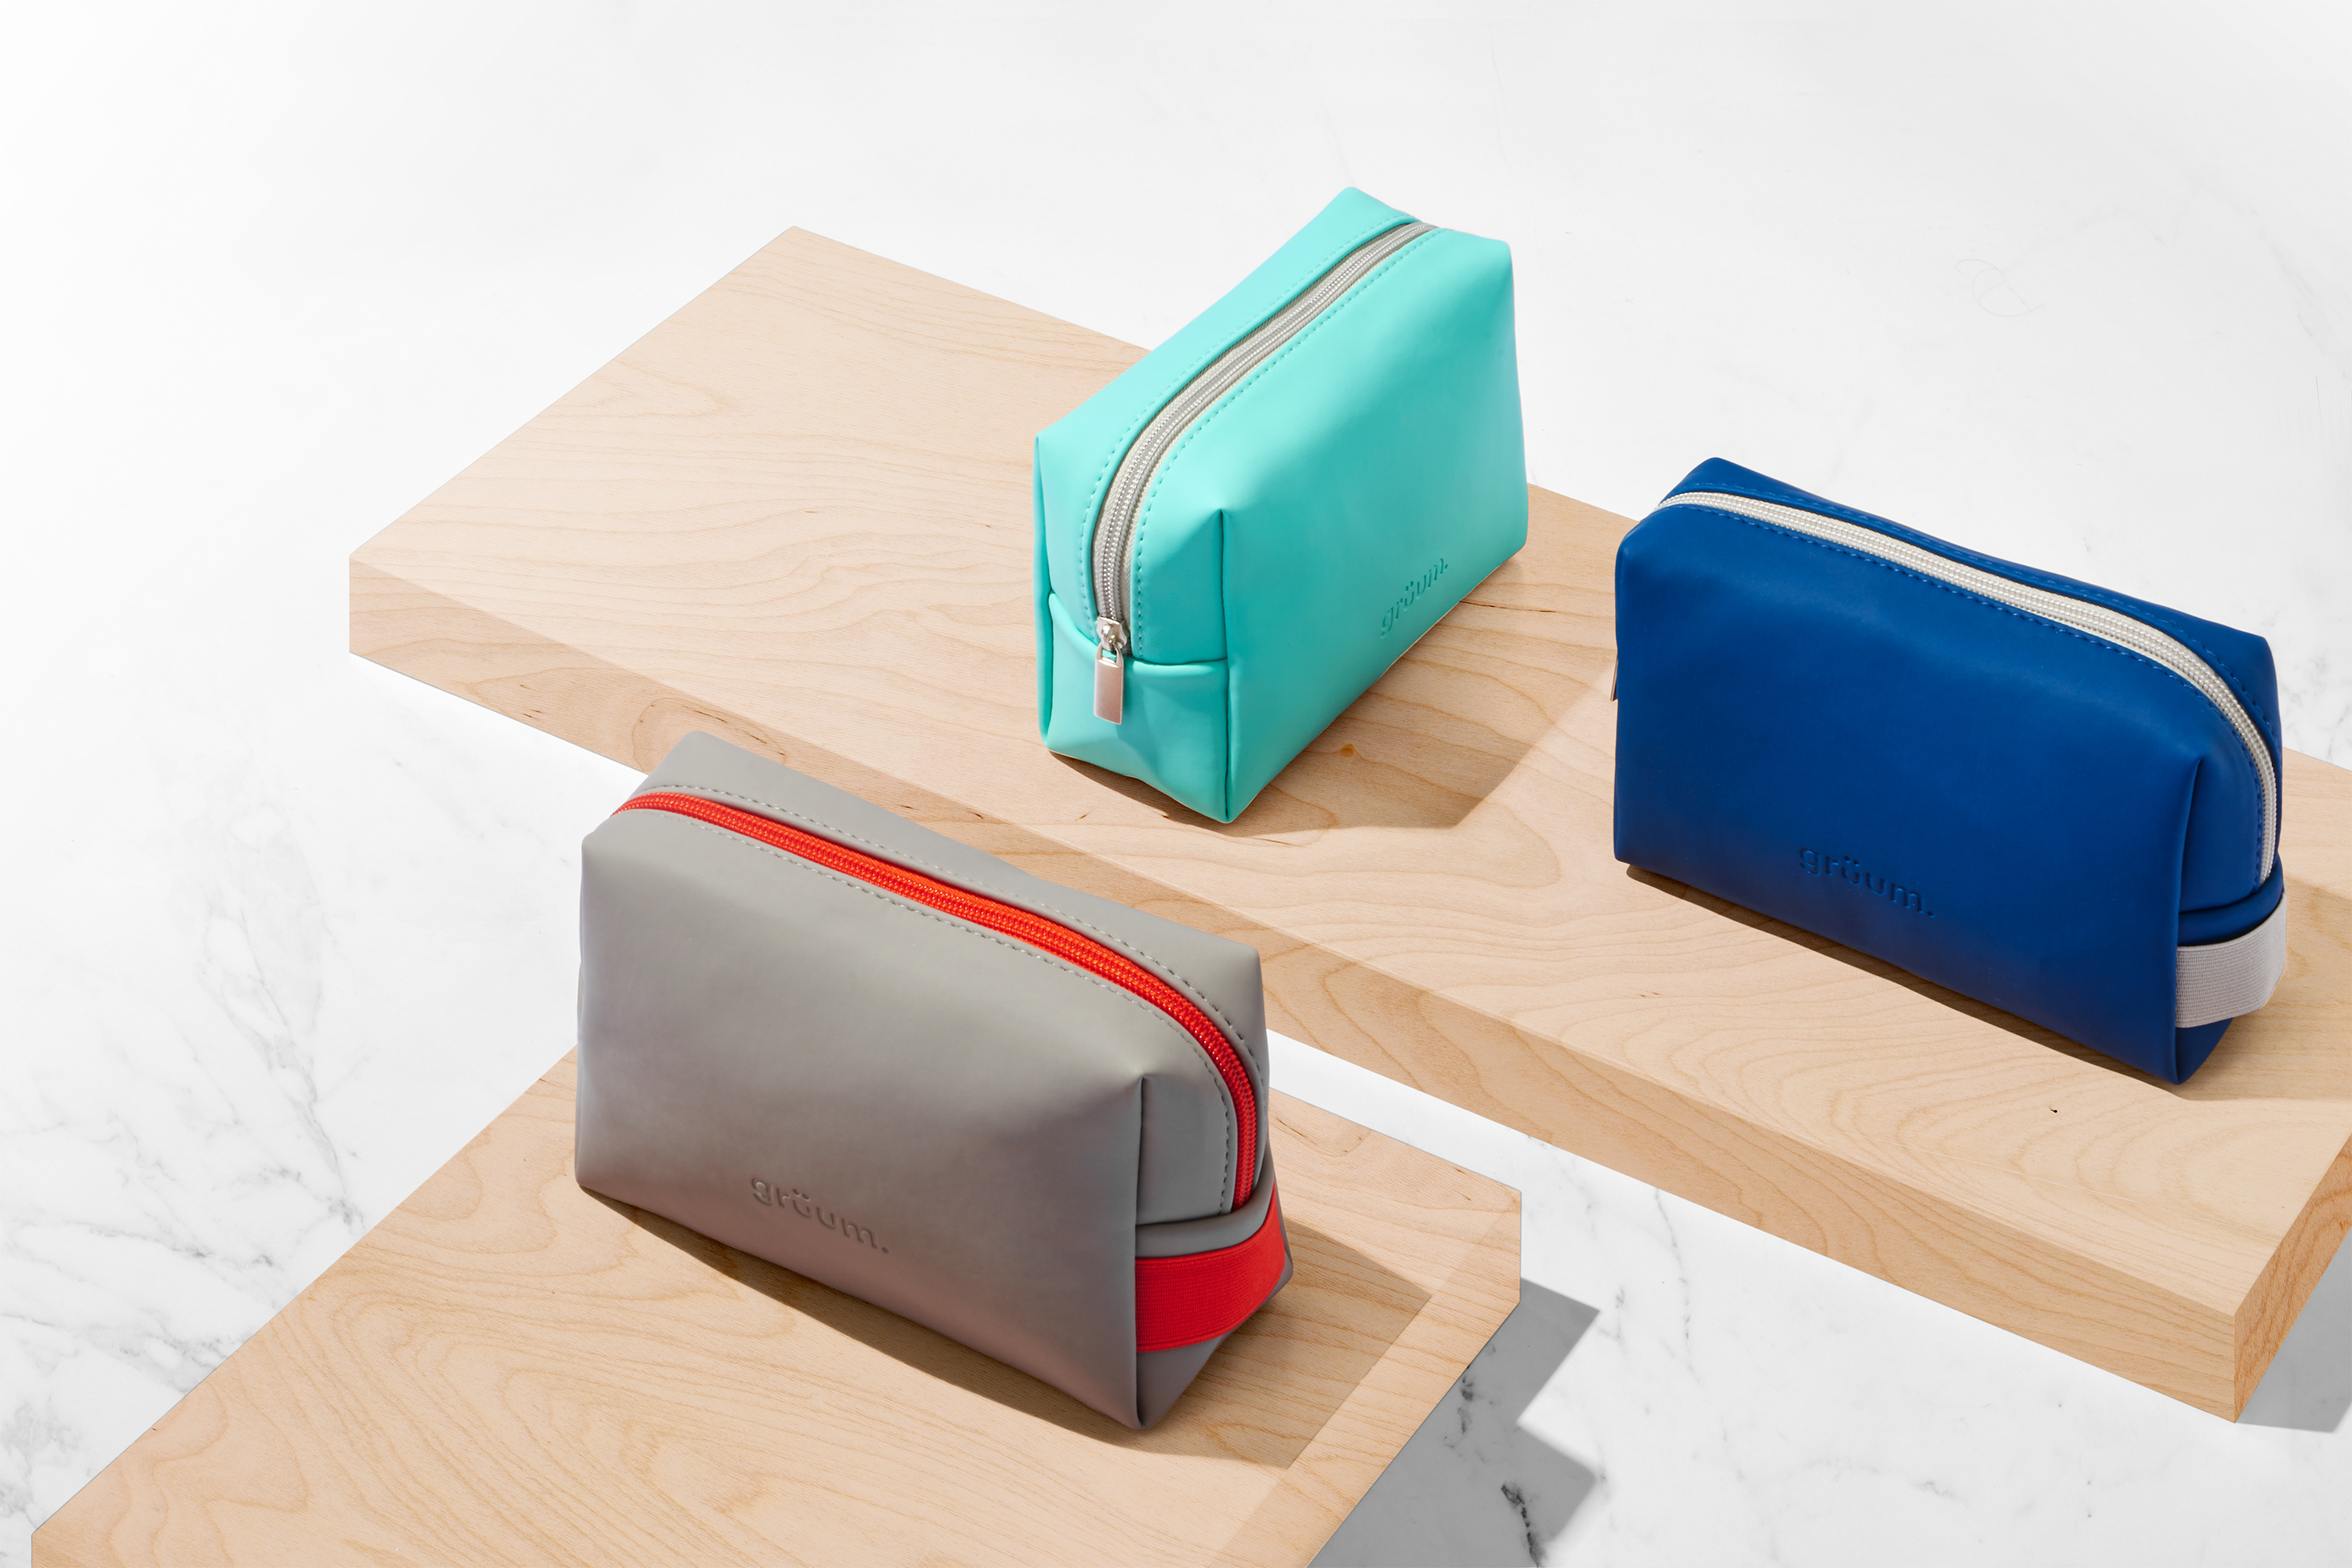 Manchester skincare and haircare brand grüum launches range of wash bags made from ocean-bound plastic